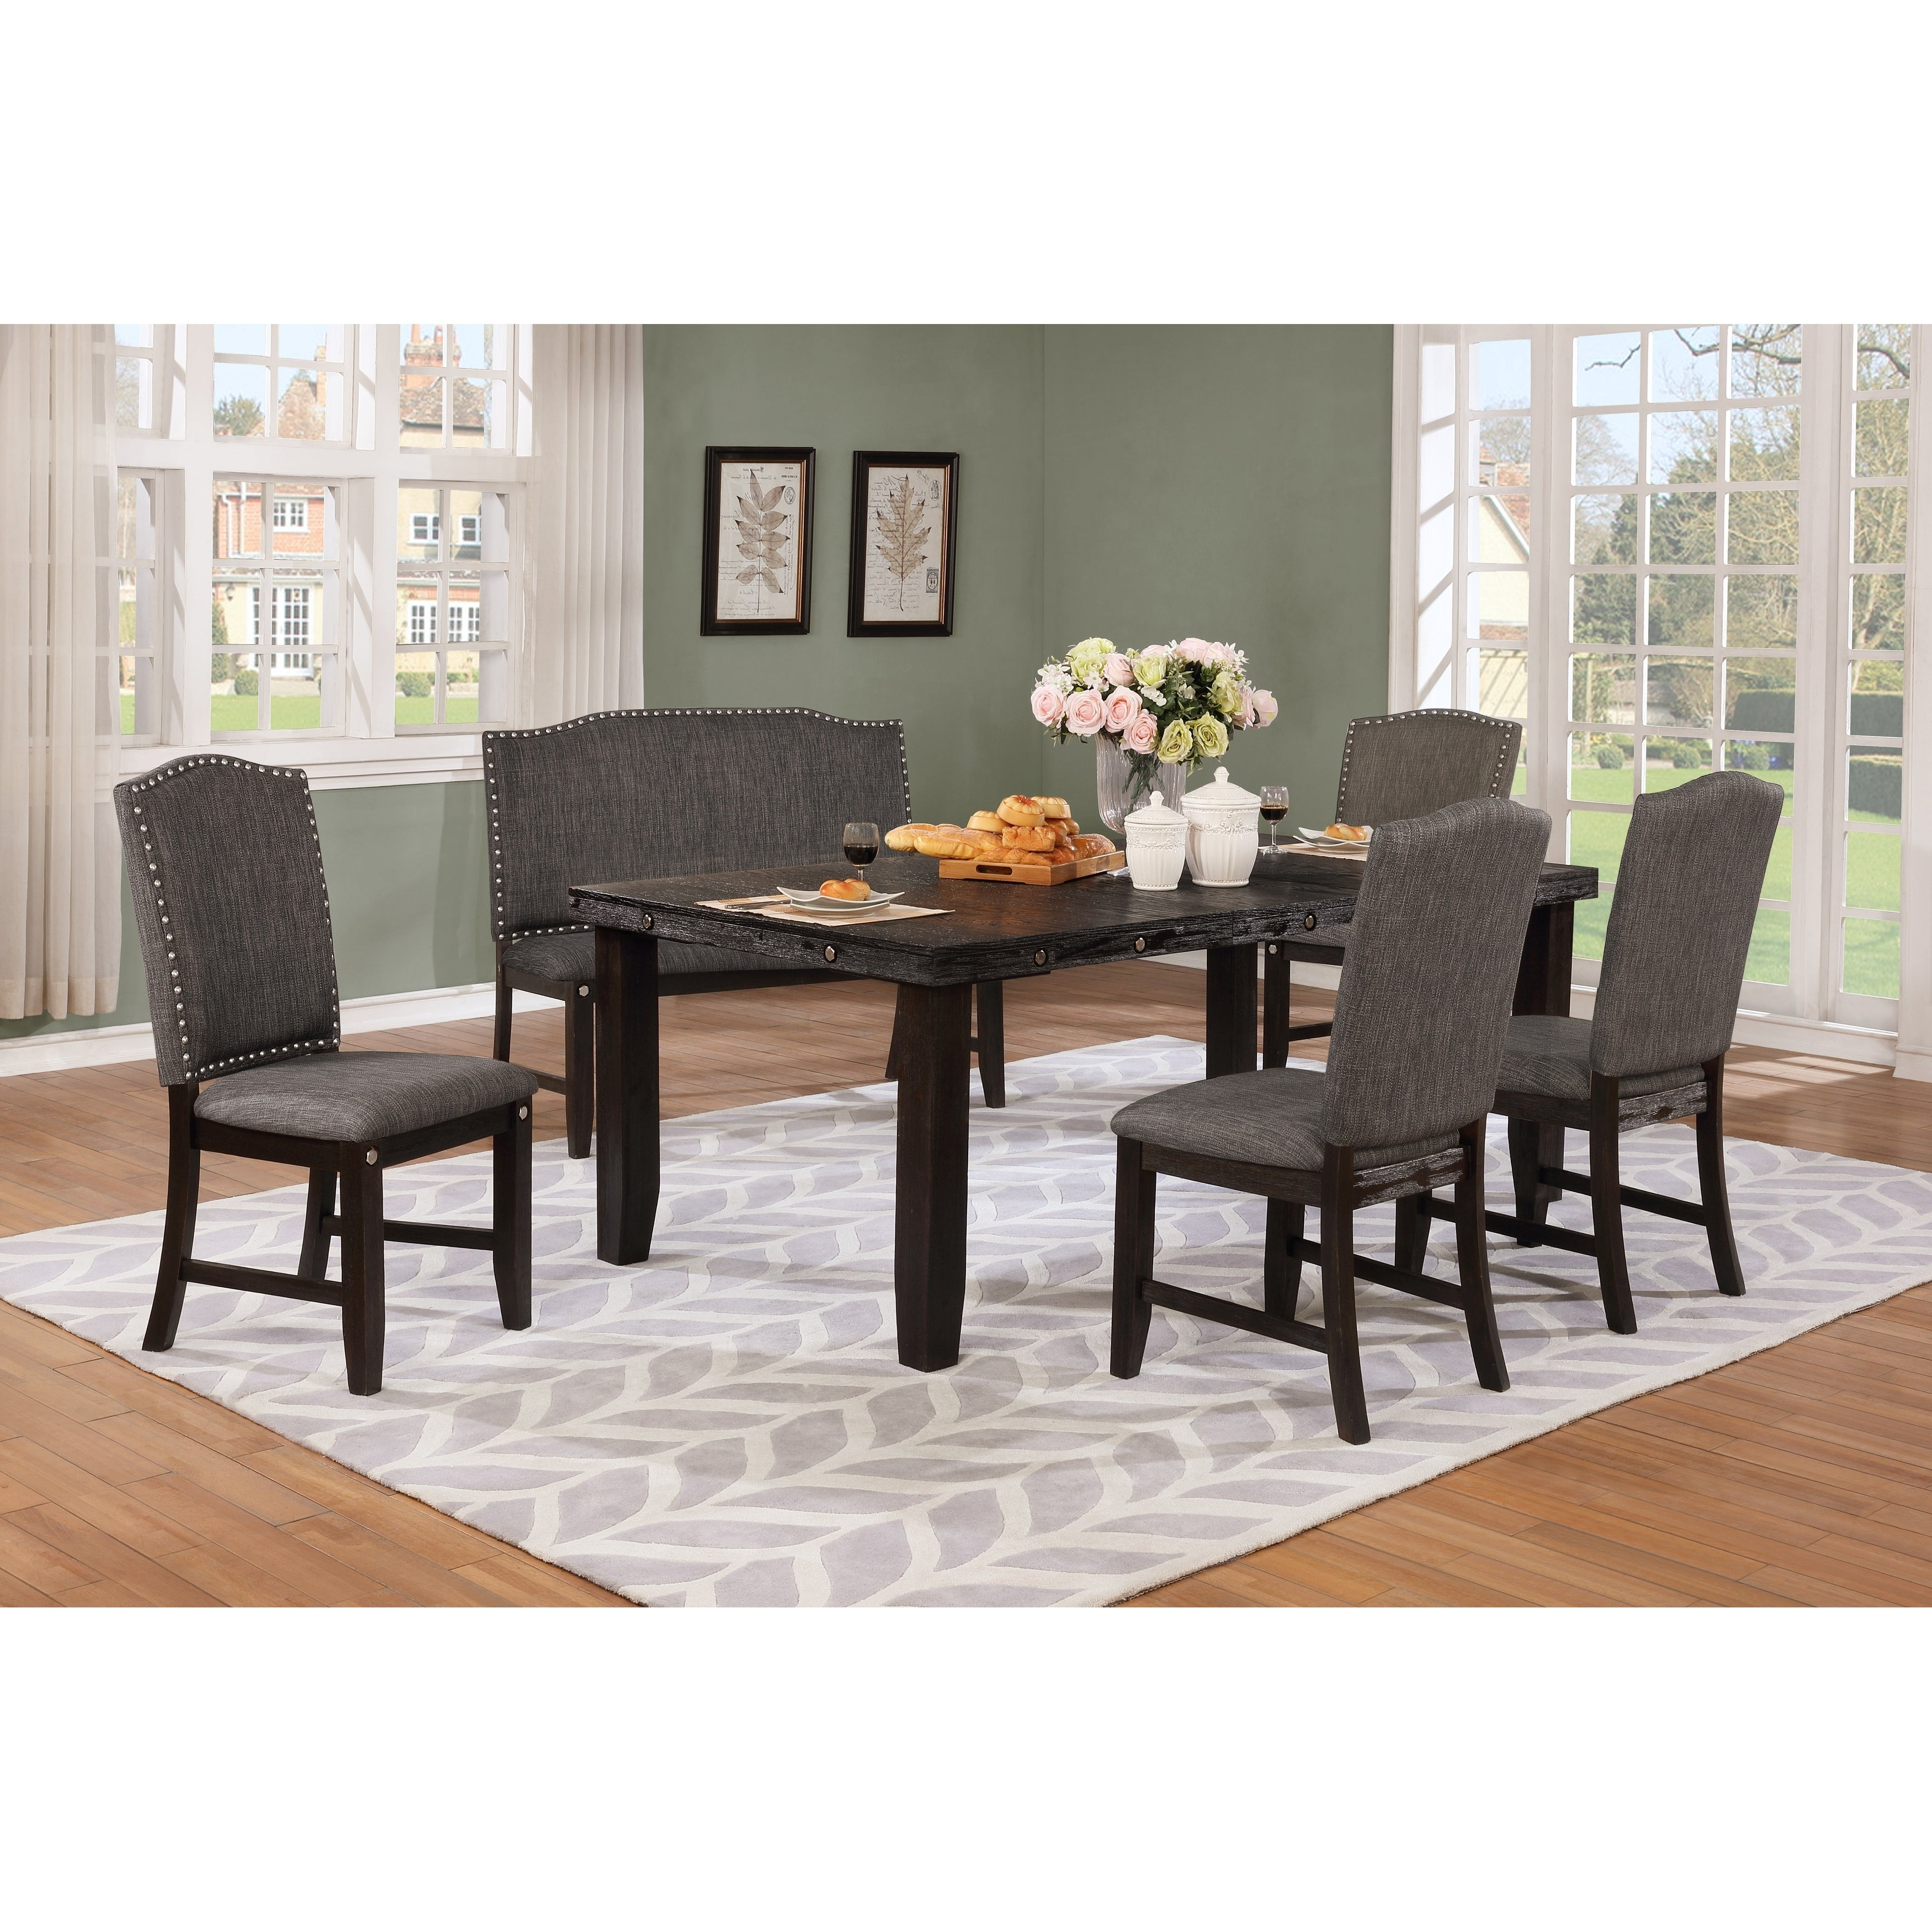 Osterman 6 Piece Extendable Dining Sets (Set Of 6) Pertaining To 2020 Buy 6 Piece Sets Kitchen & Dining Room Sets Online At Overstock (View 3 of 25)